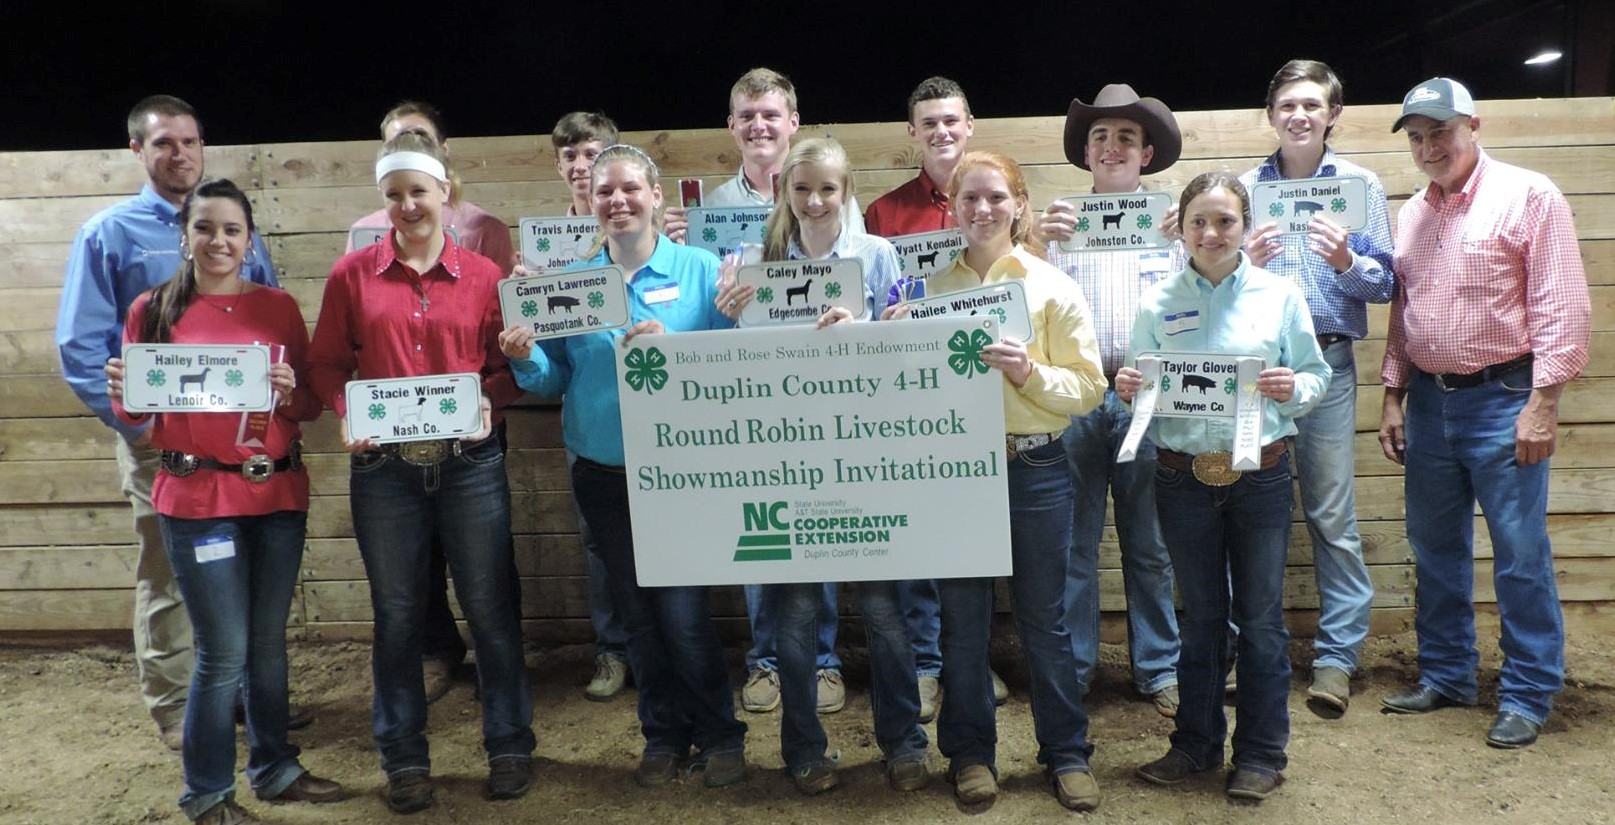 Image of Round Robin Showmanship Invitational participants